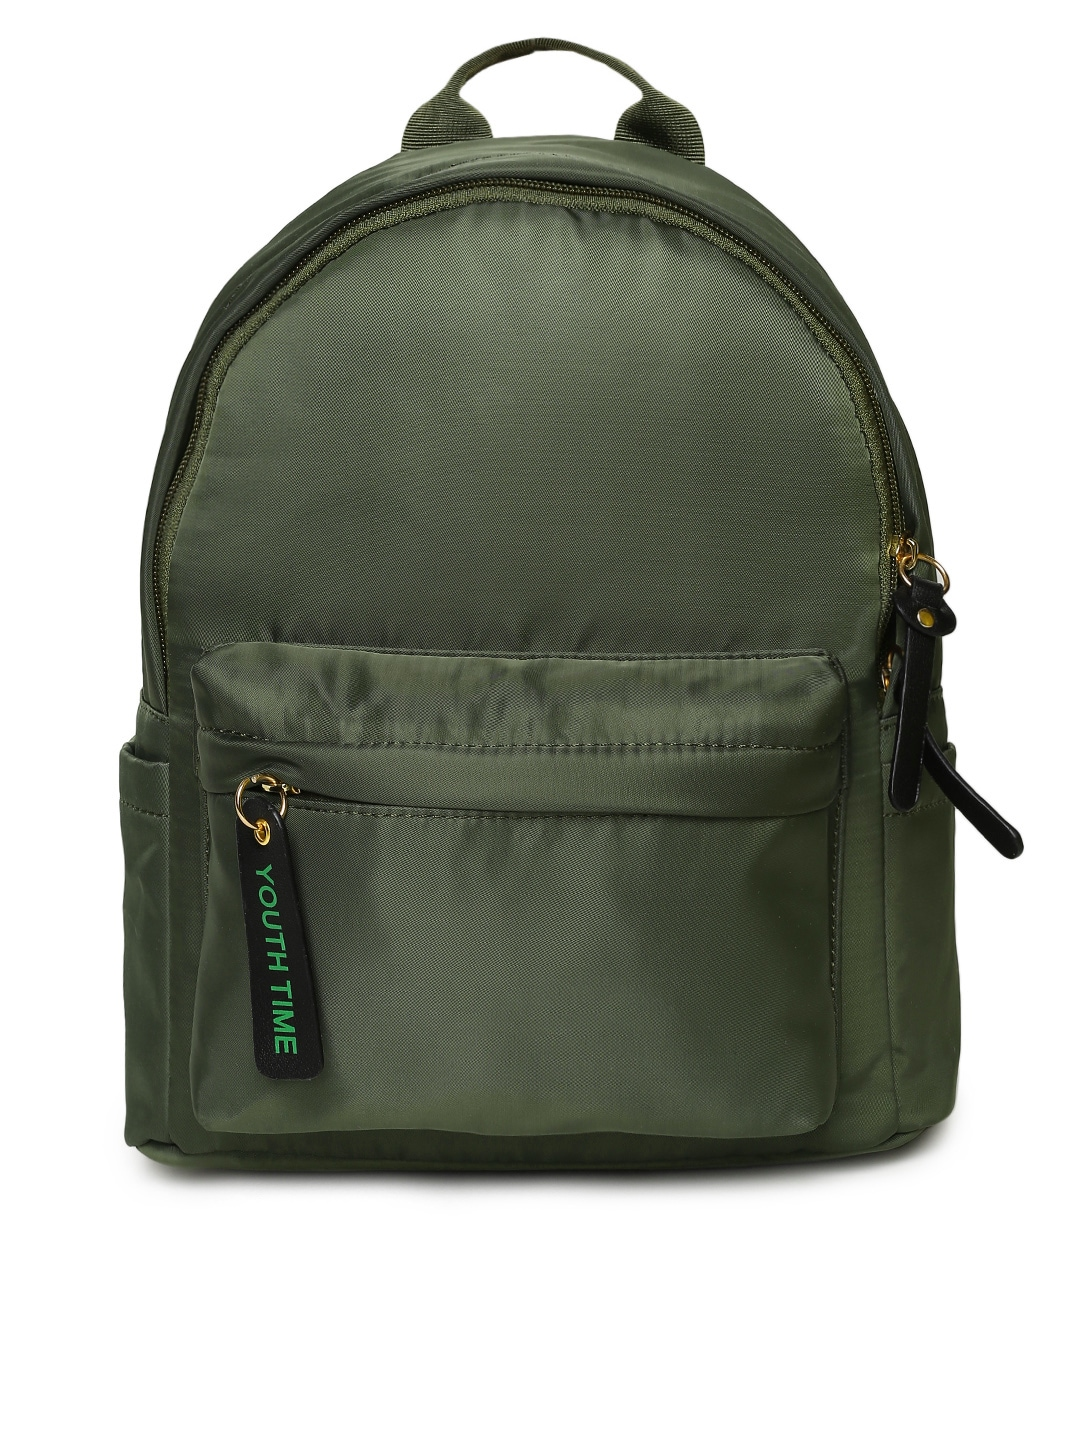 College Bags - Buy College Bags online in India df15712a4